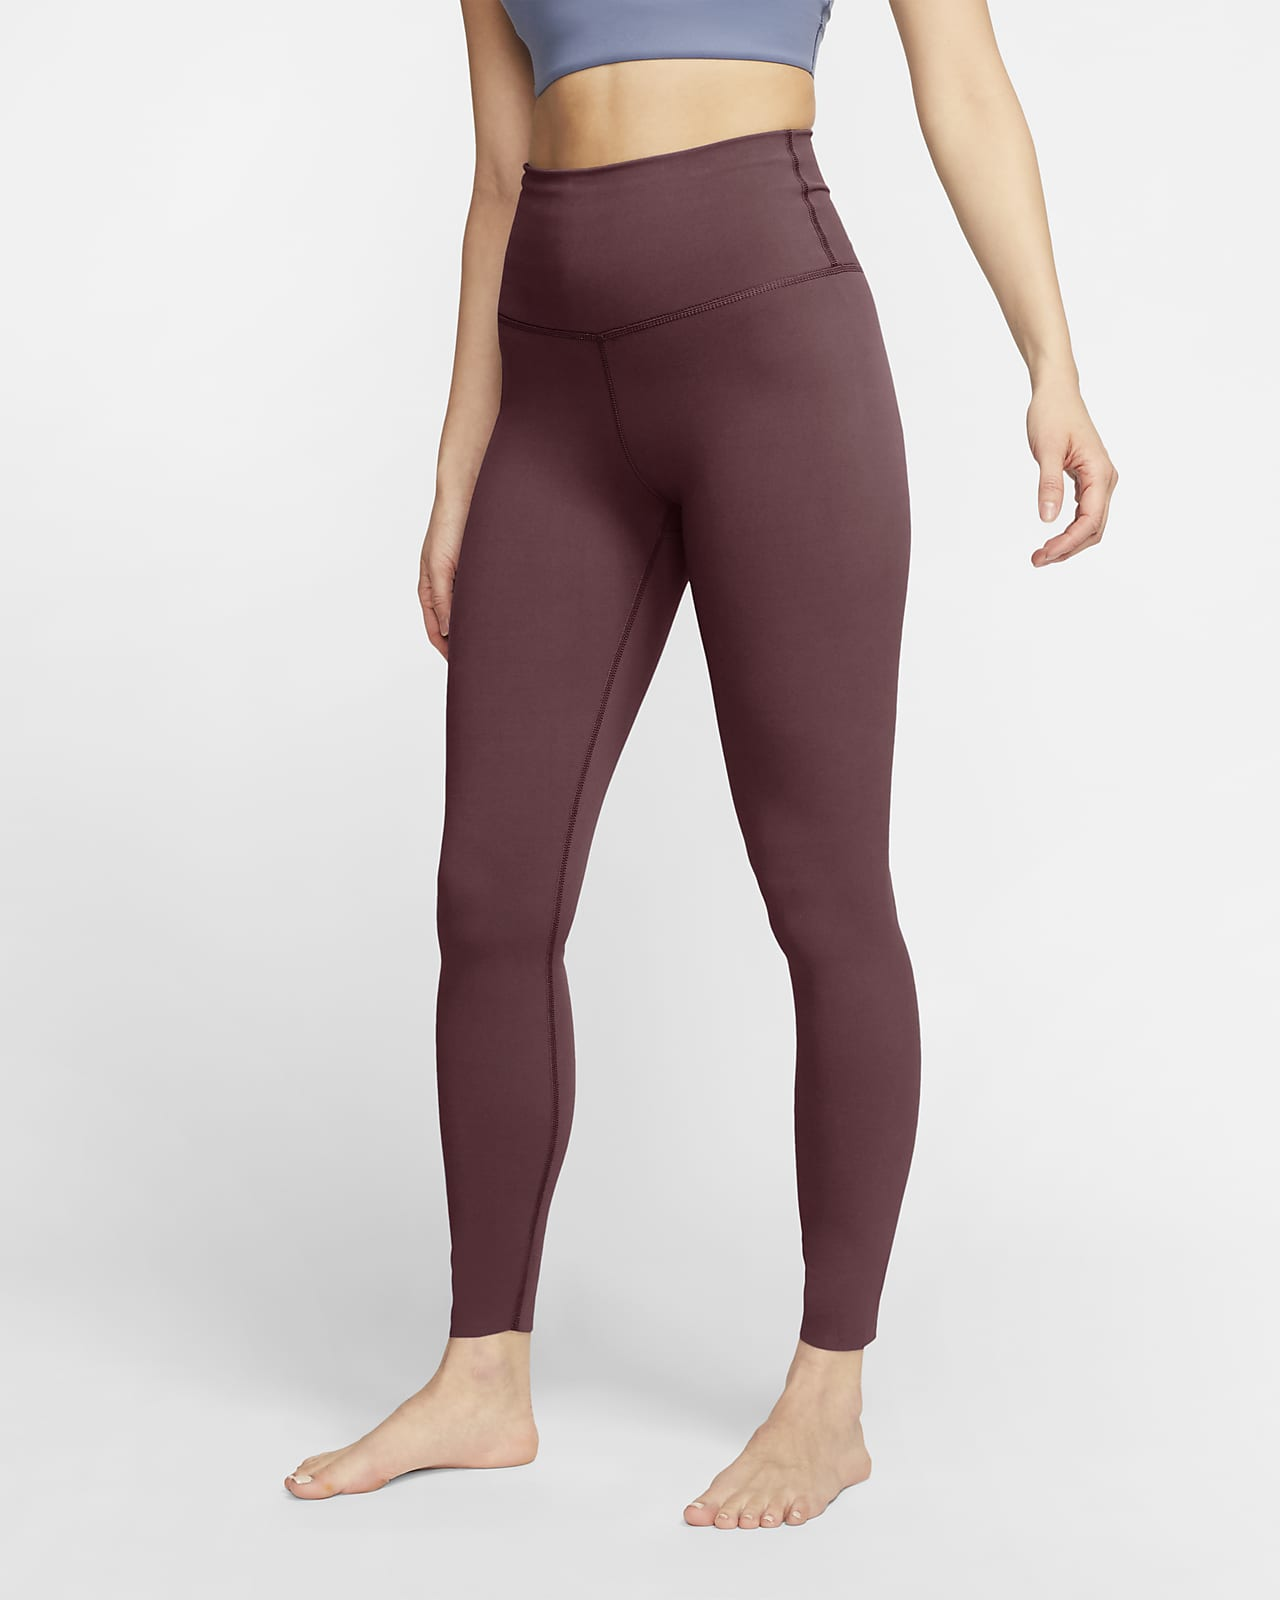 Tights a 7/8 em Infinalon Nike Yoga Luxe para mulher